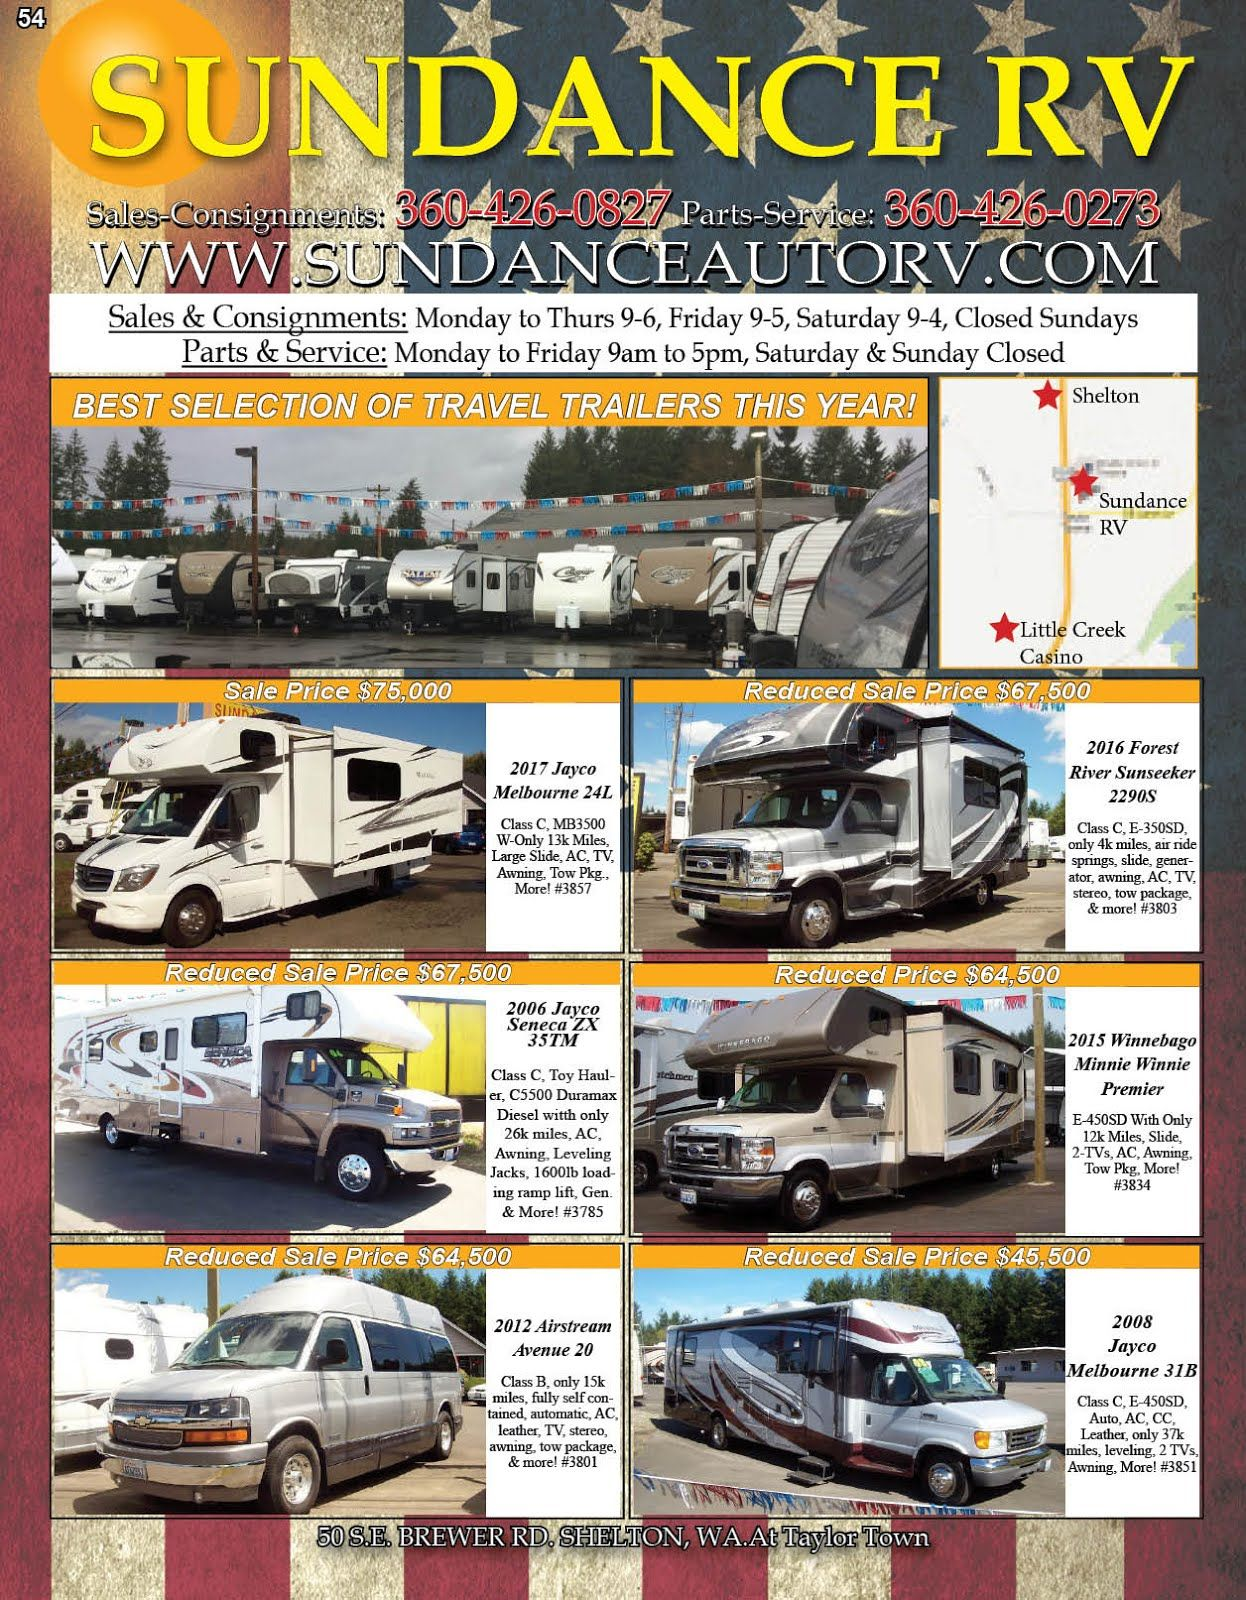 Sundance Auto Rv Center Sales Service Parts Consignments Check Out This Weeks Ad Www Sundanceautorv Com Sundance Travel Trailer Rv